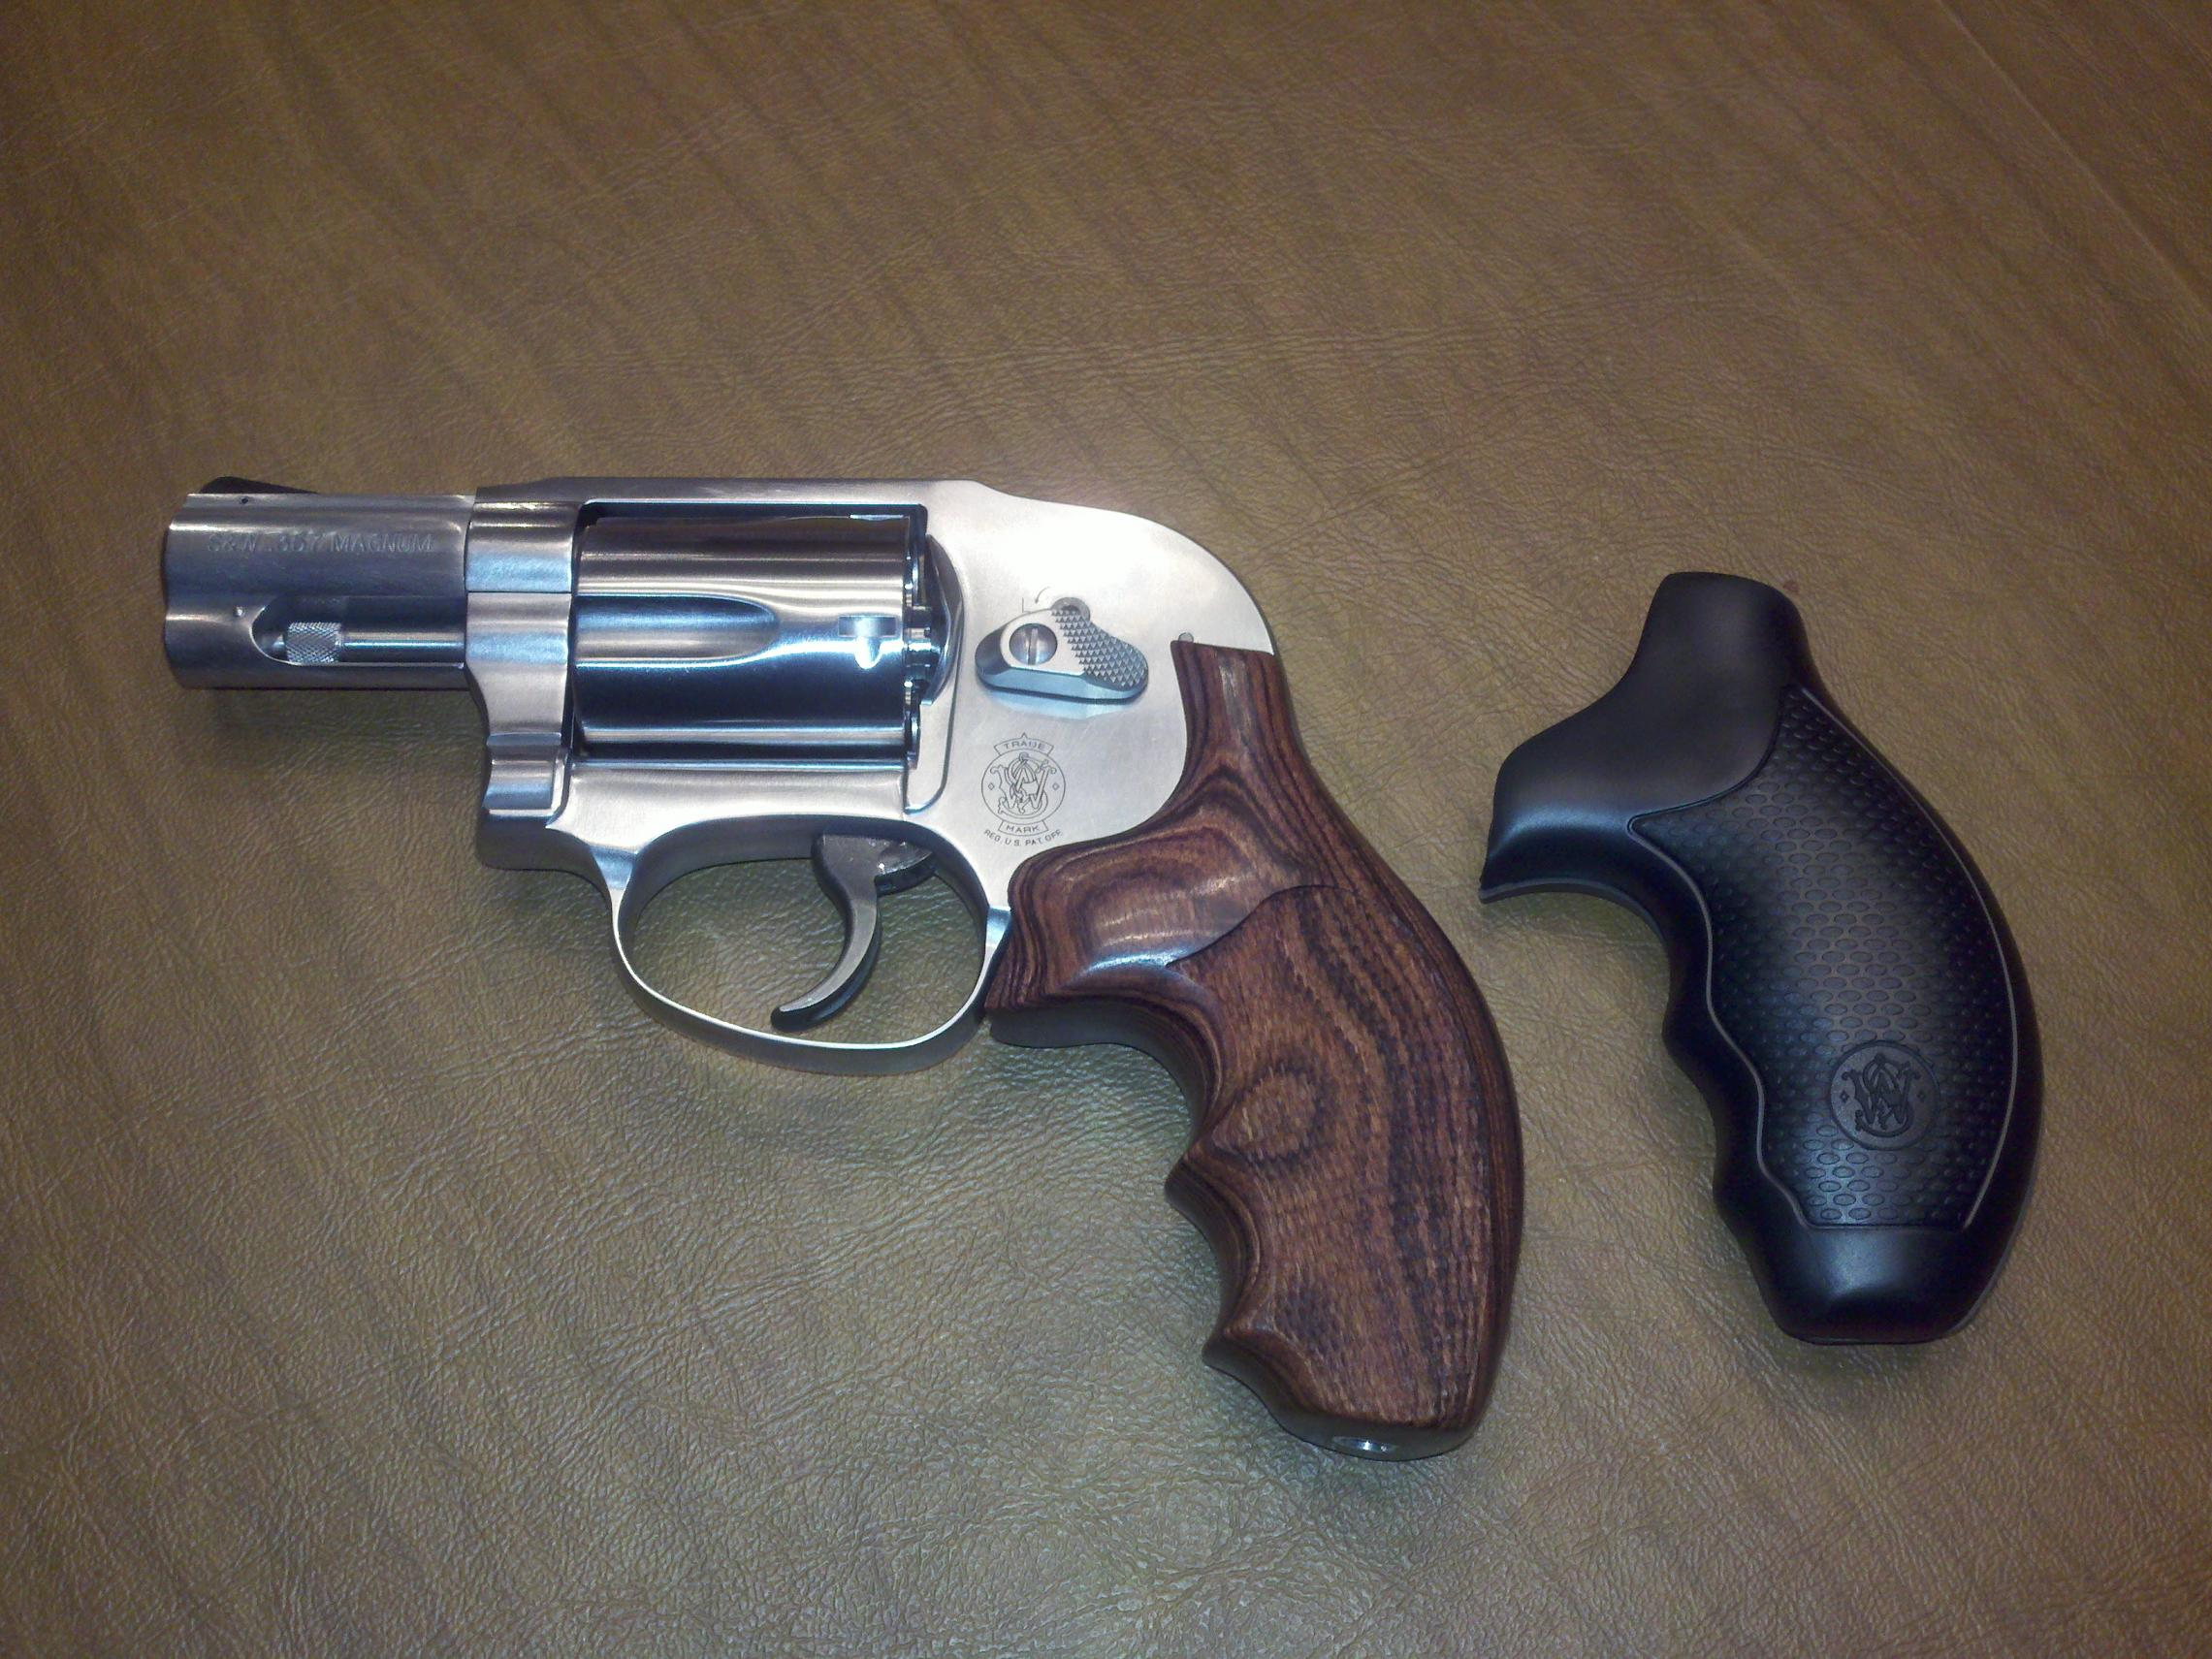 New Hogue grips on my S&W 649...SWEET!!!-2011-02-07_22-04-26_407.jpg